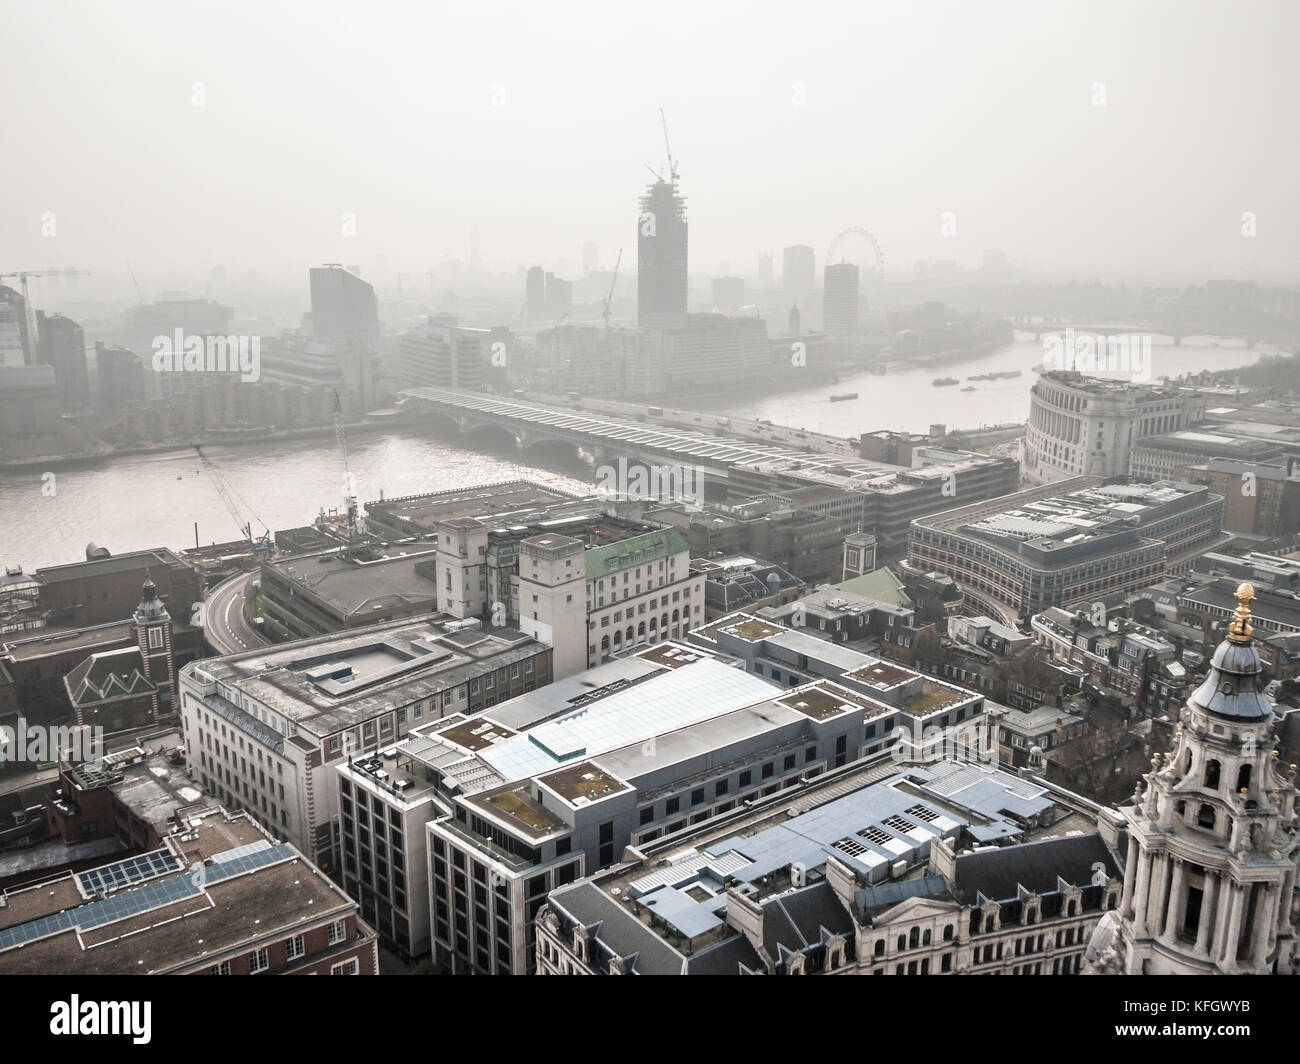 View from St Pauls Cathedral showing heavy air pollution and smog over London - Stock Image